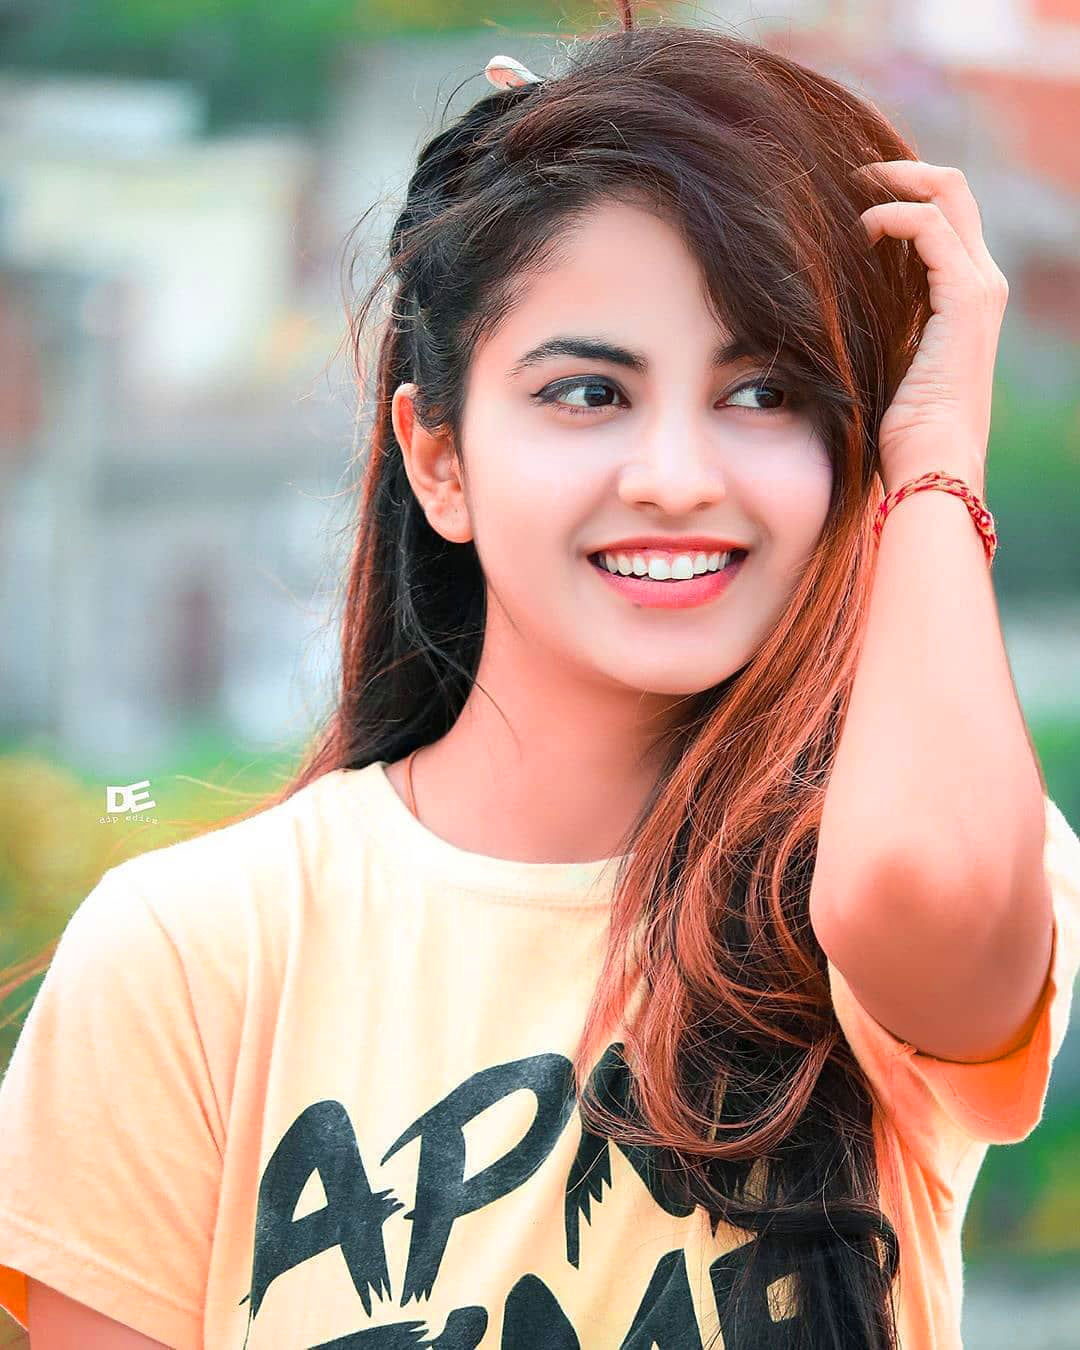 New Top Quality Cute Girl Images For Whatsapp Dp Wallpaper Download